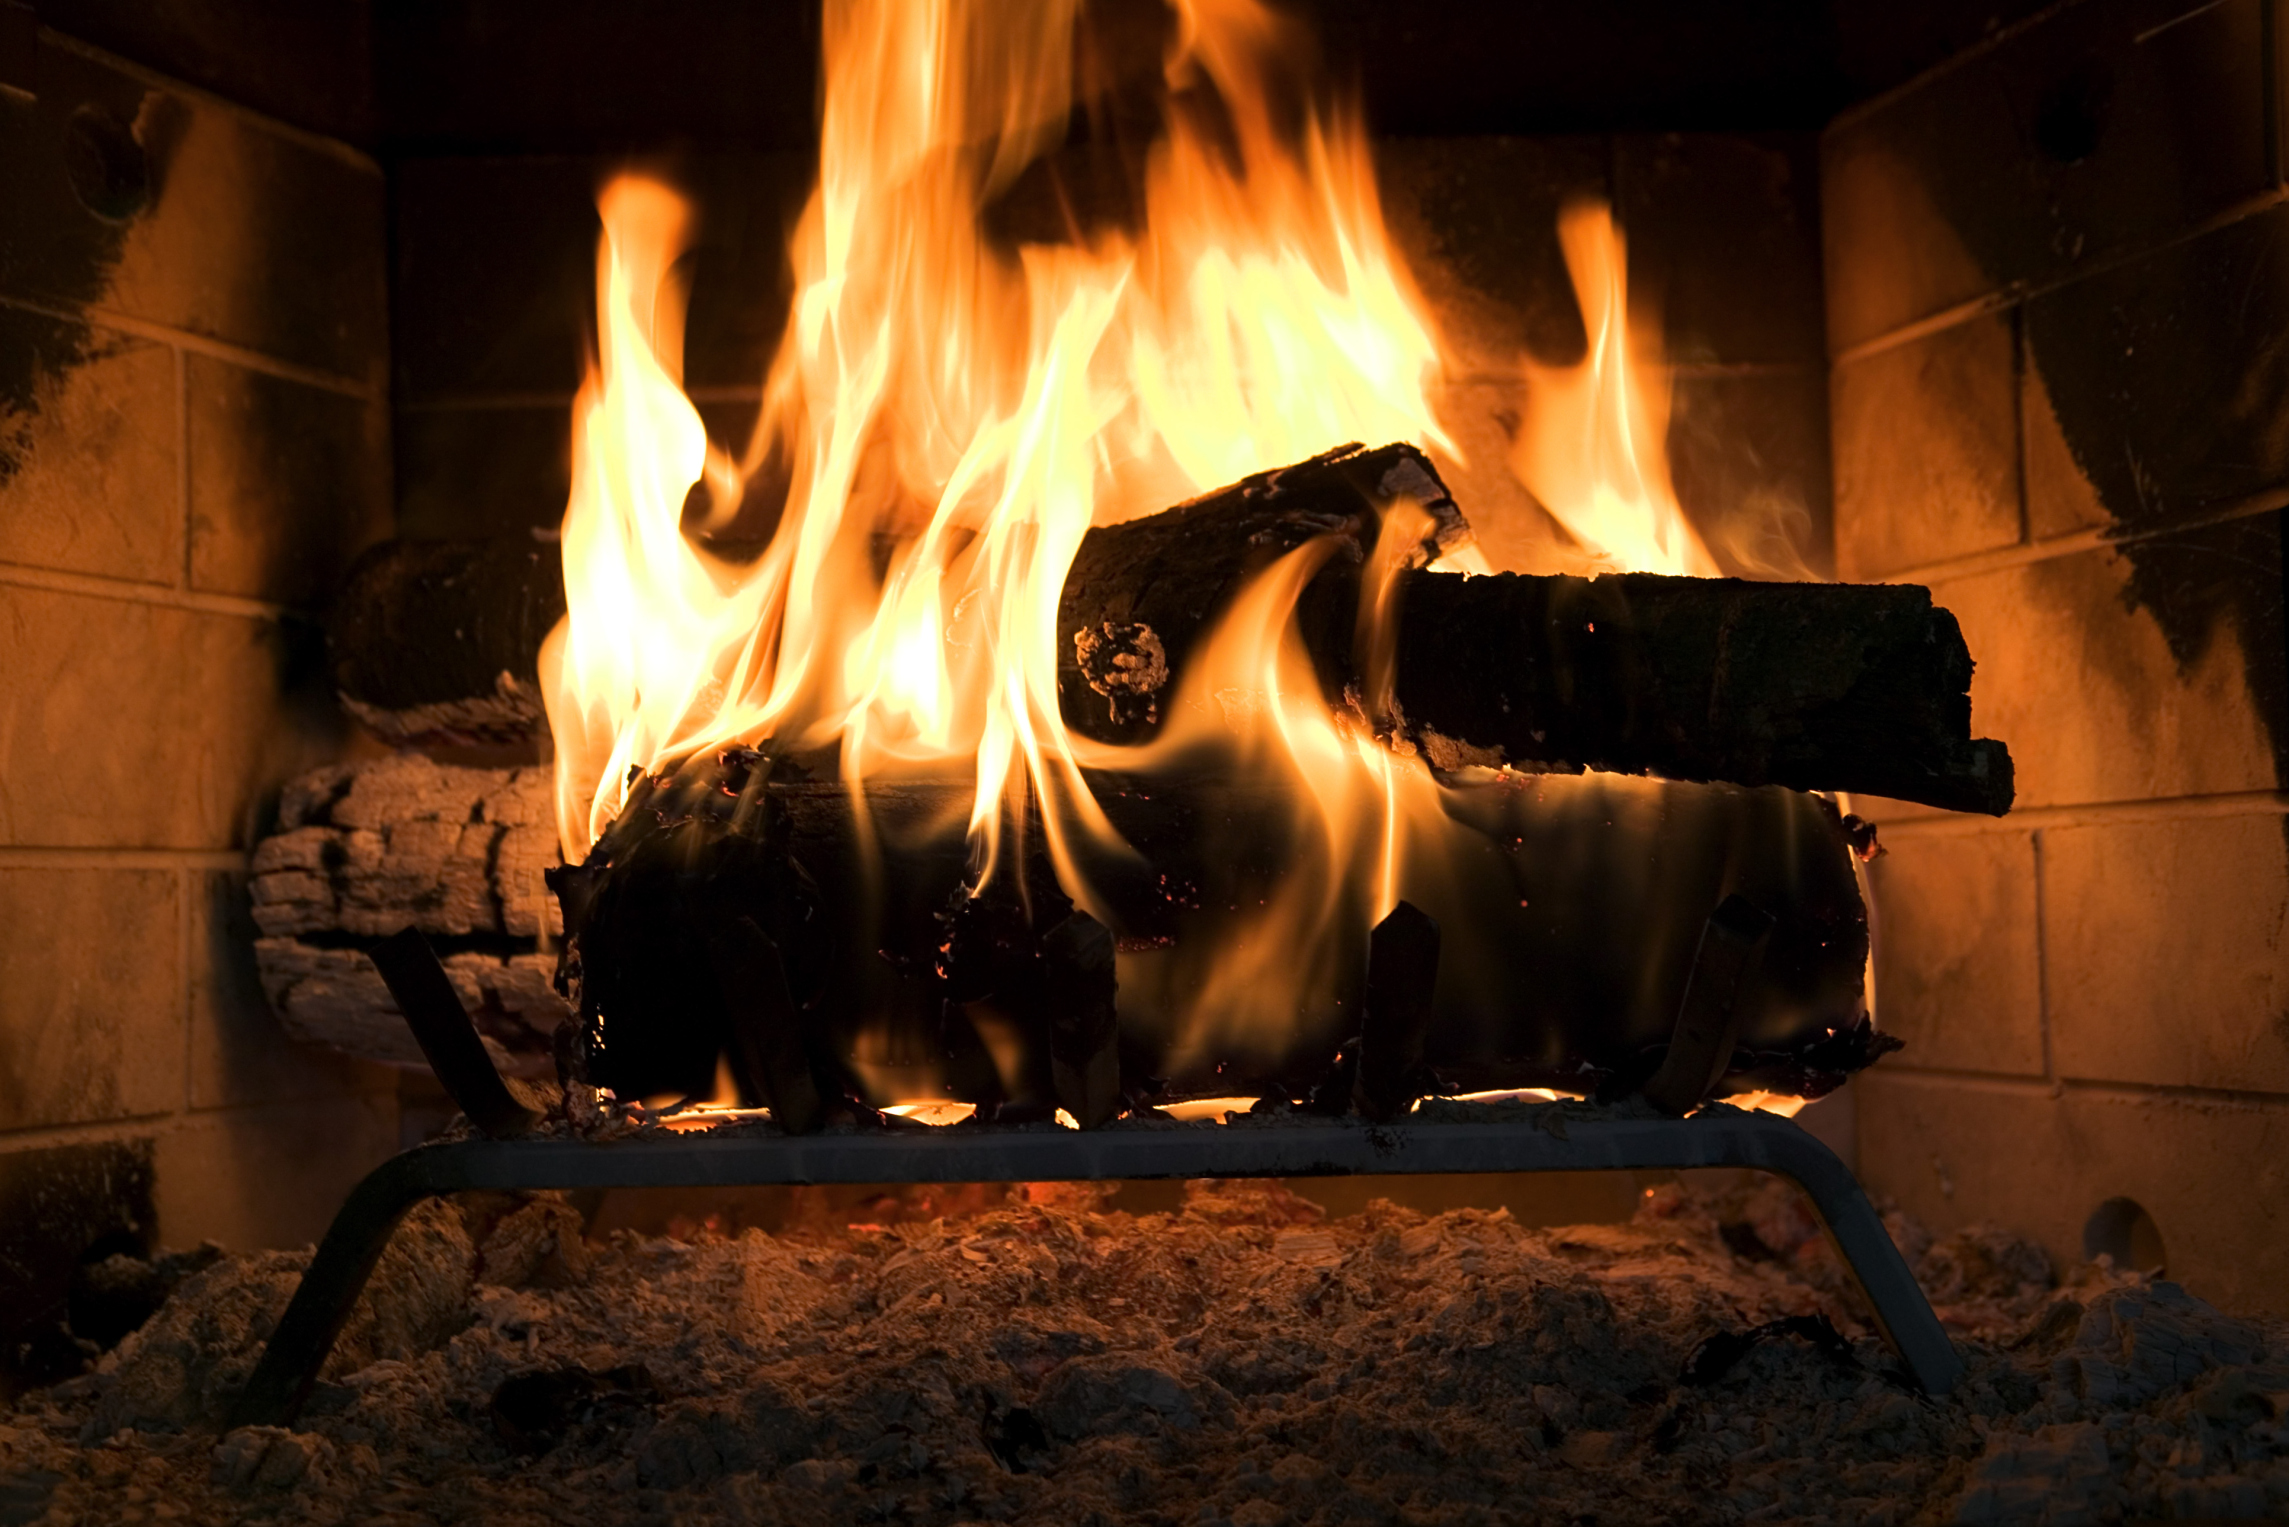 Convert Fireplace To Gas Burning What Is Required To Convert A Wood Fireplace To Gas Hunker